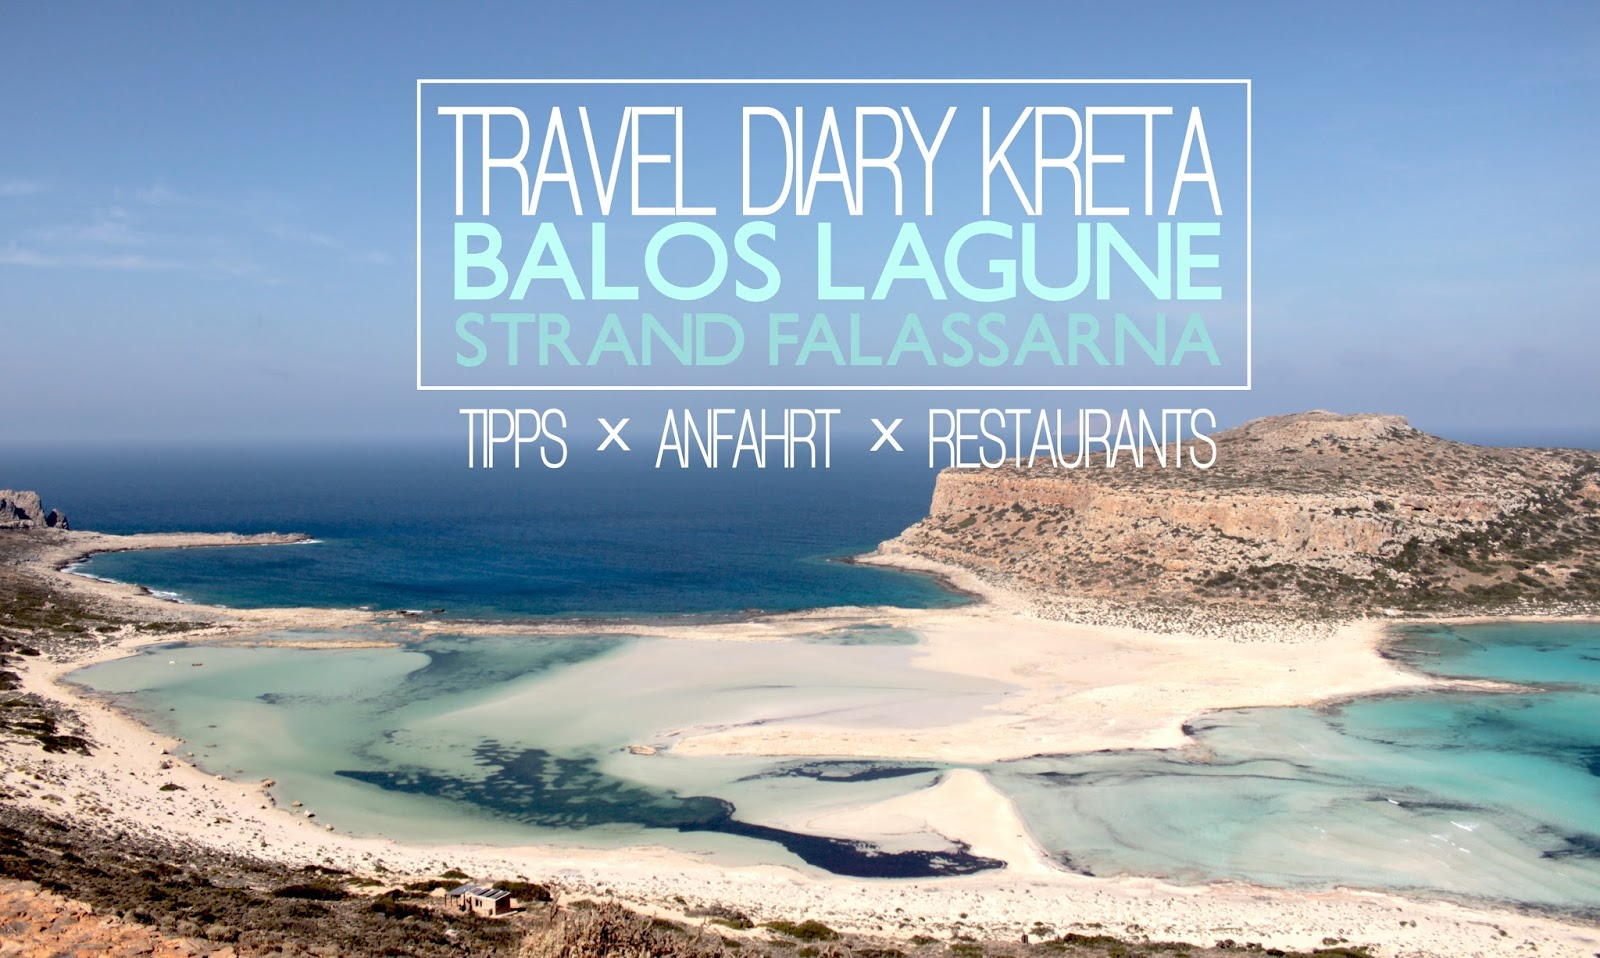 Schönste Strände Kretas - Reisebericht: Lagune Bucht Balos (inkl. Anfahrt Restaurant Tipps und Wichtigem), Strand Falassarna Westküste Kreta West coast Crete Greece Best Beaches Europe